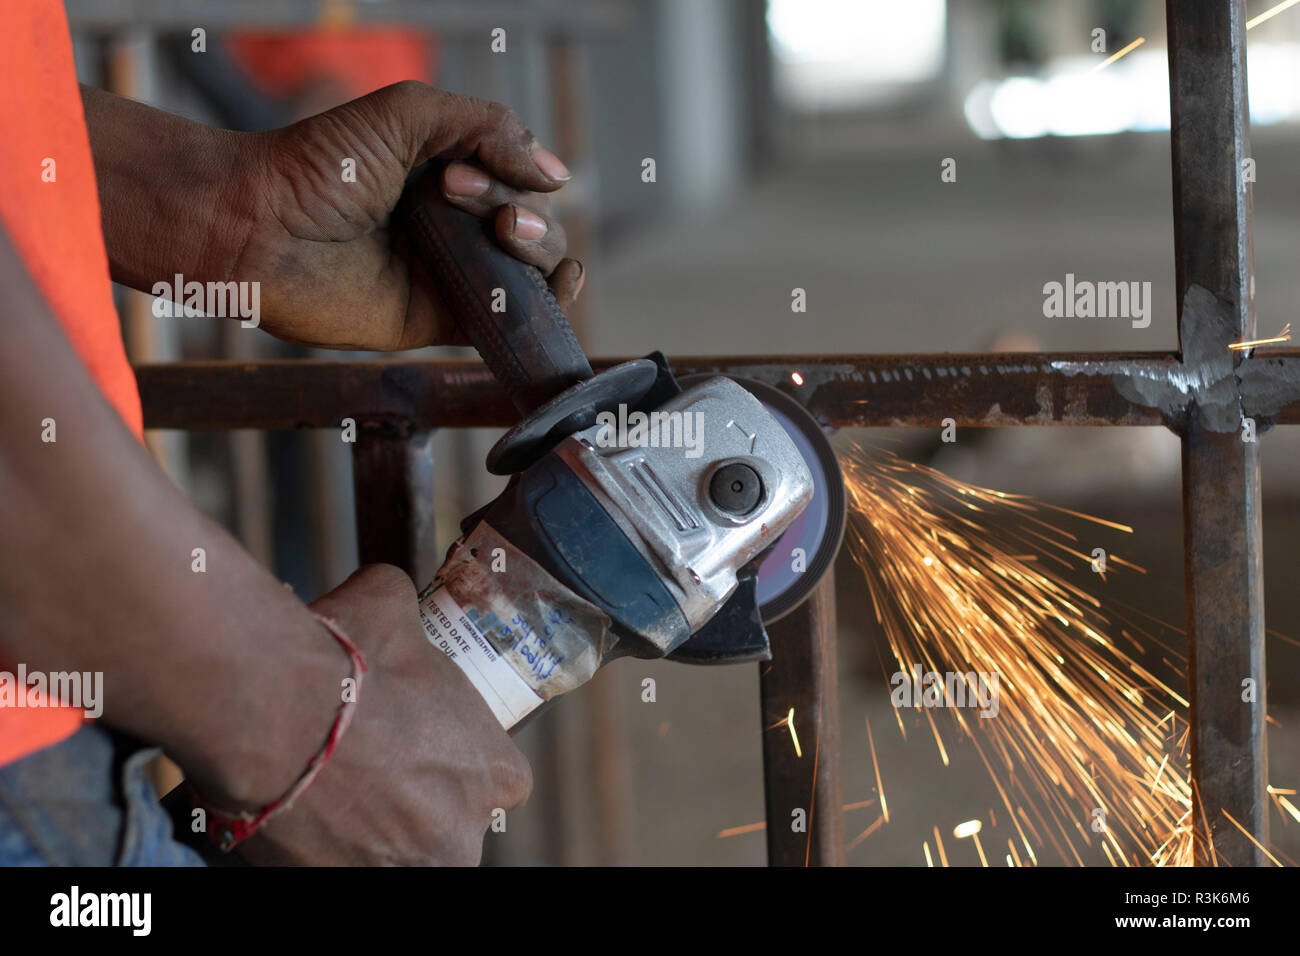 Person doing welding work, India. Stock Photo